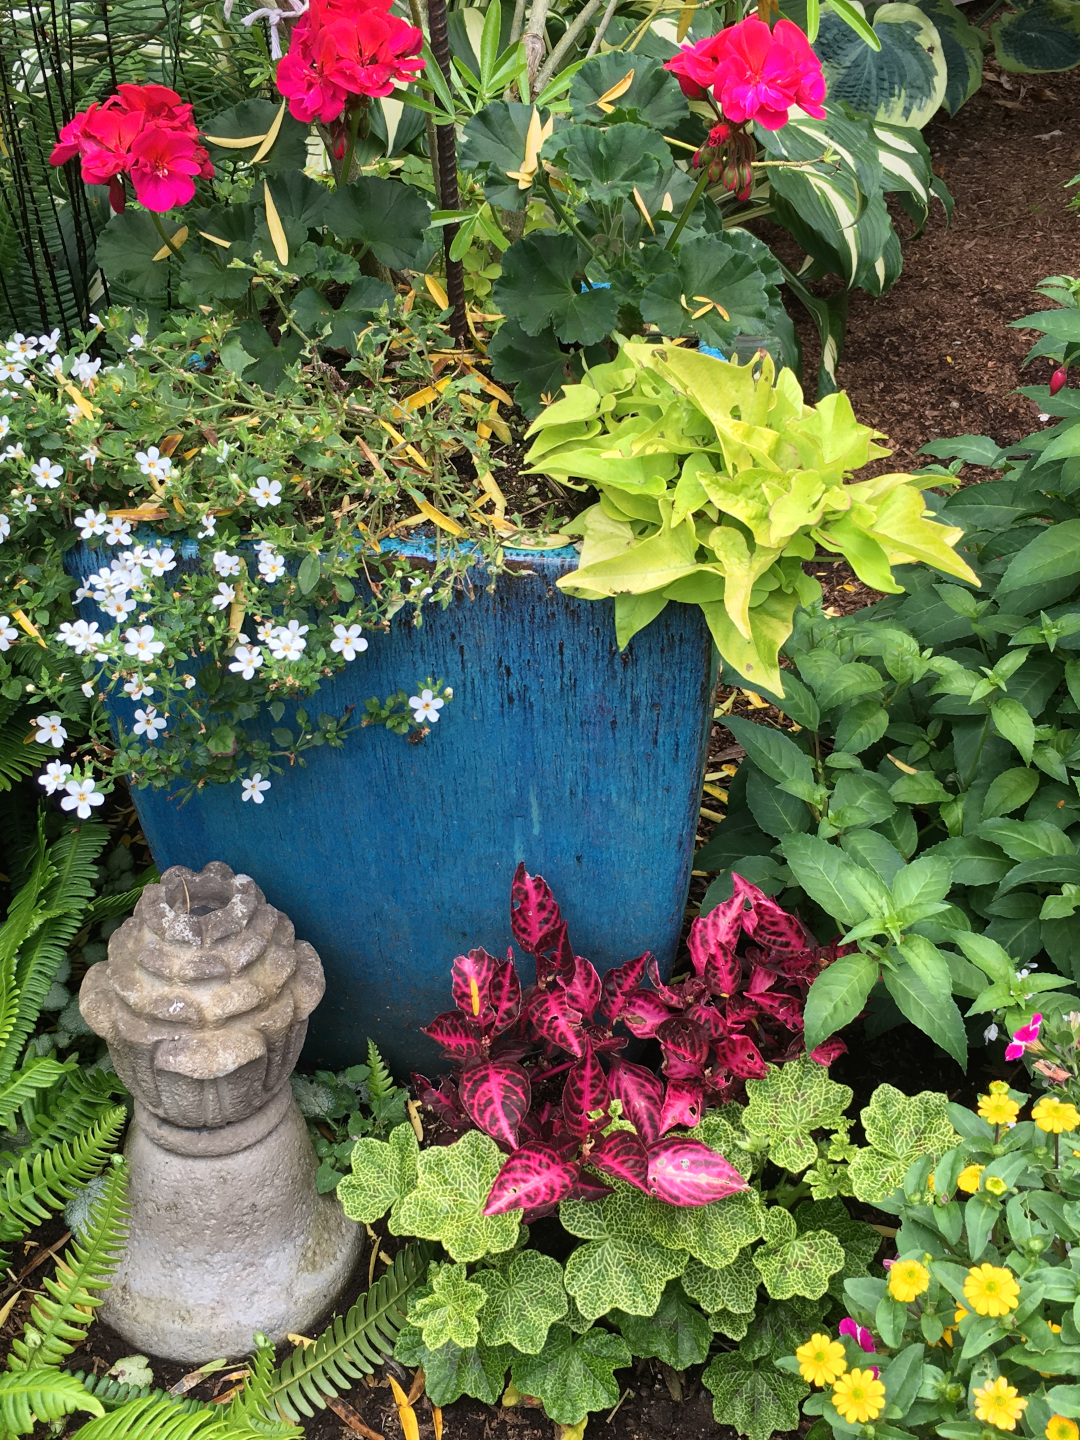 mixed planting of annuals